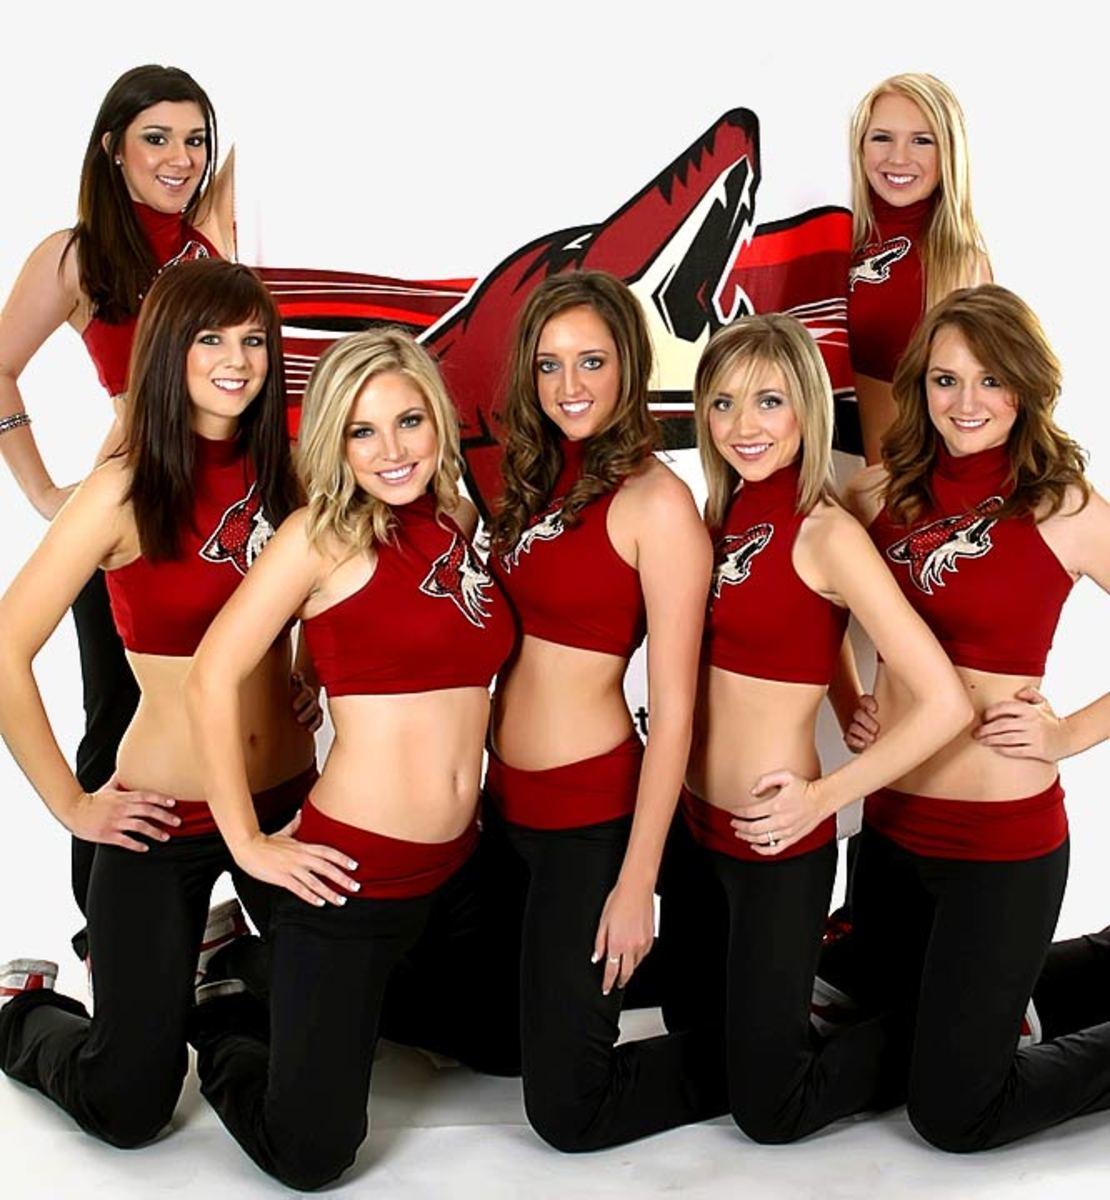 coyotes-the-pack-dancers%2809%29.jpg